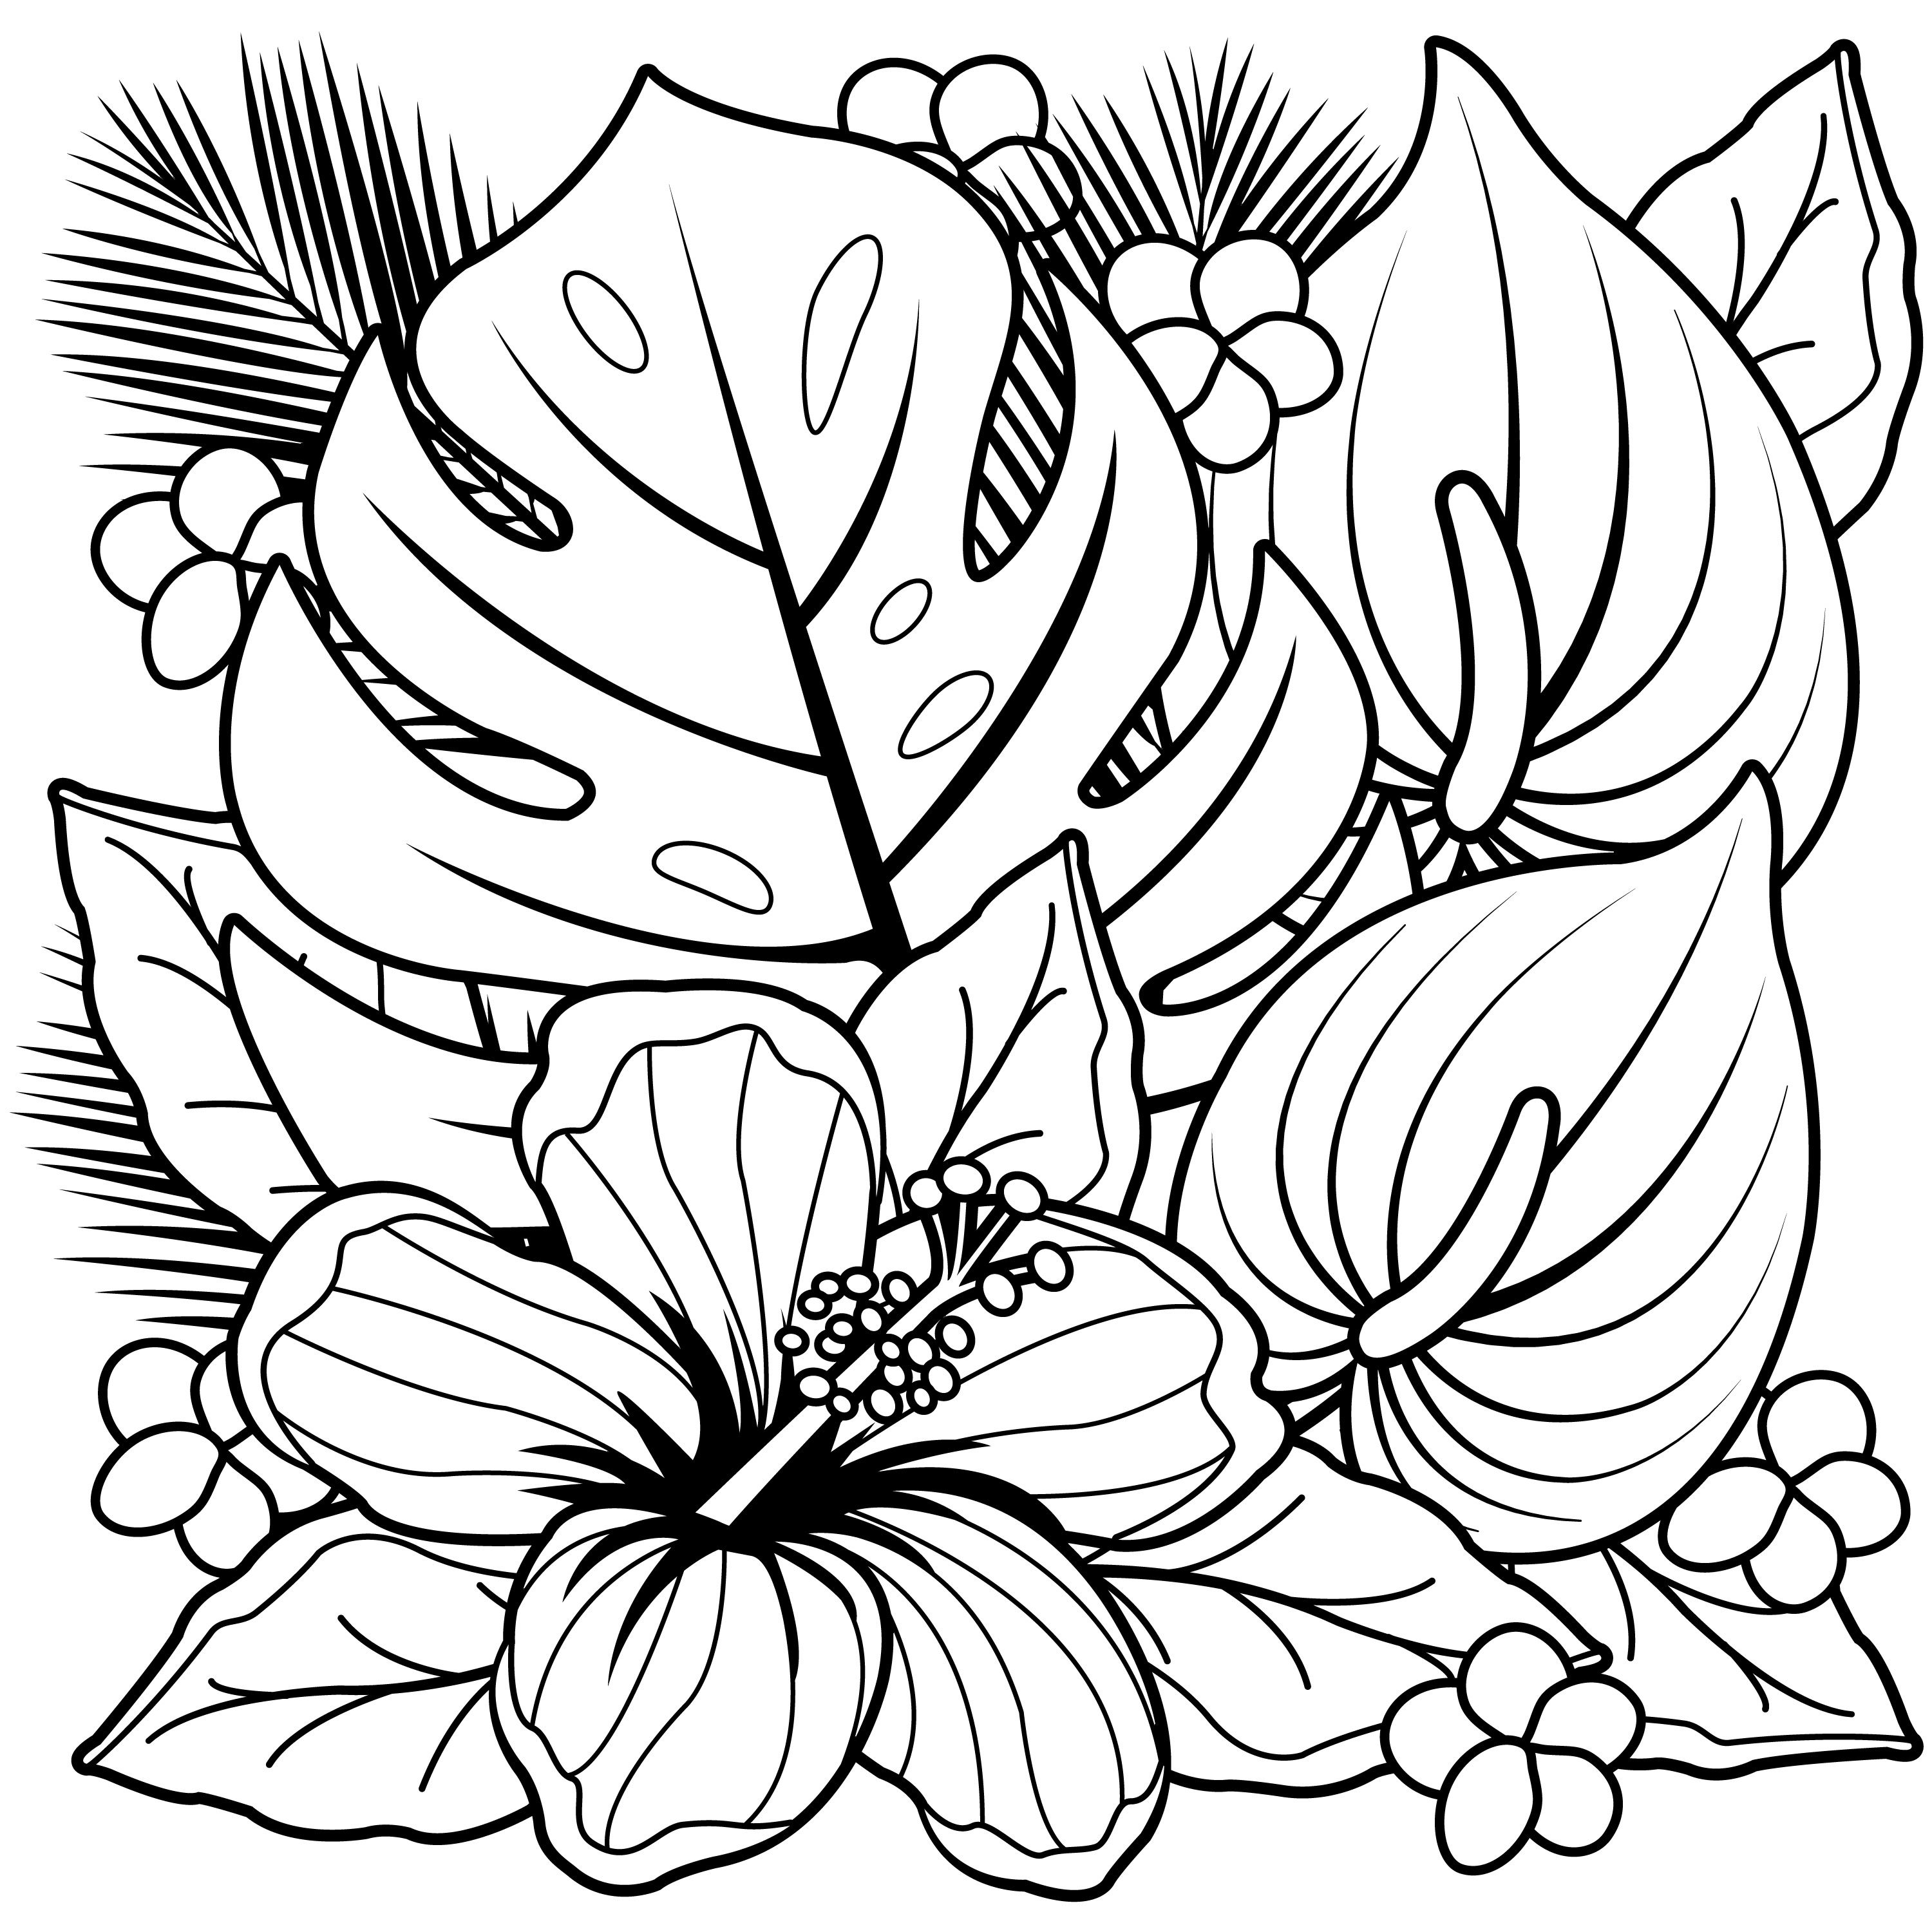 Pin By Jorgelina D Aulerio On Coloring Pages Printable Flower Coloring Pages Flower Coloring Sheets Free Coloring Pages